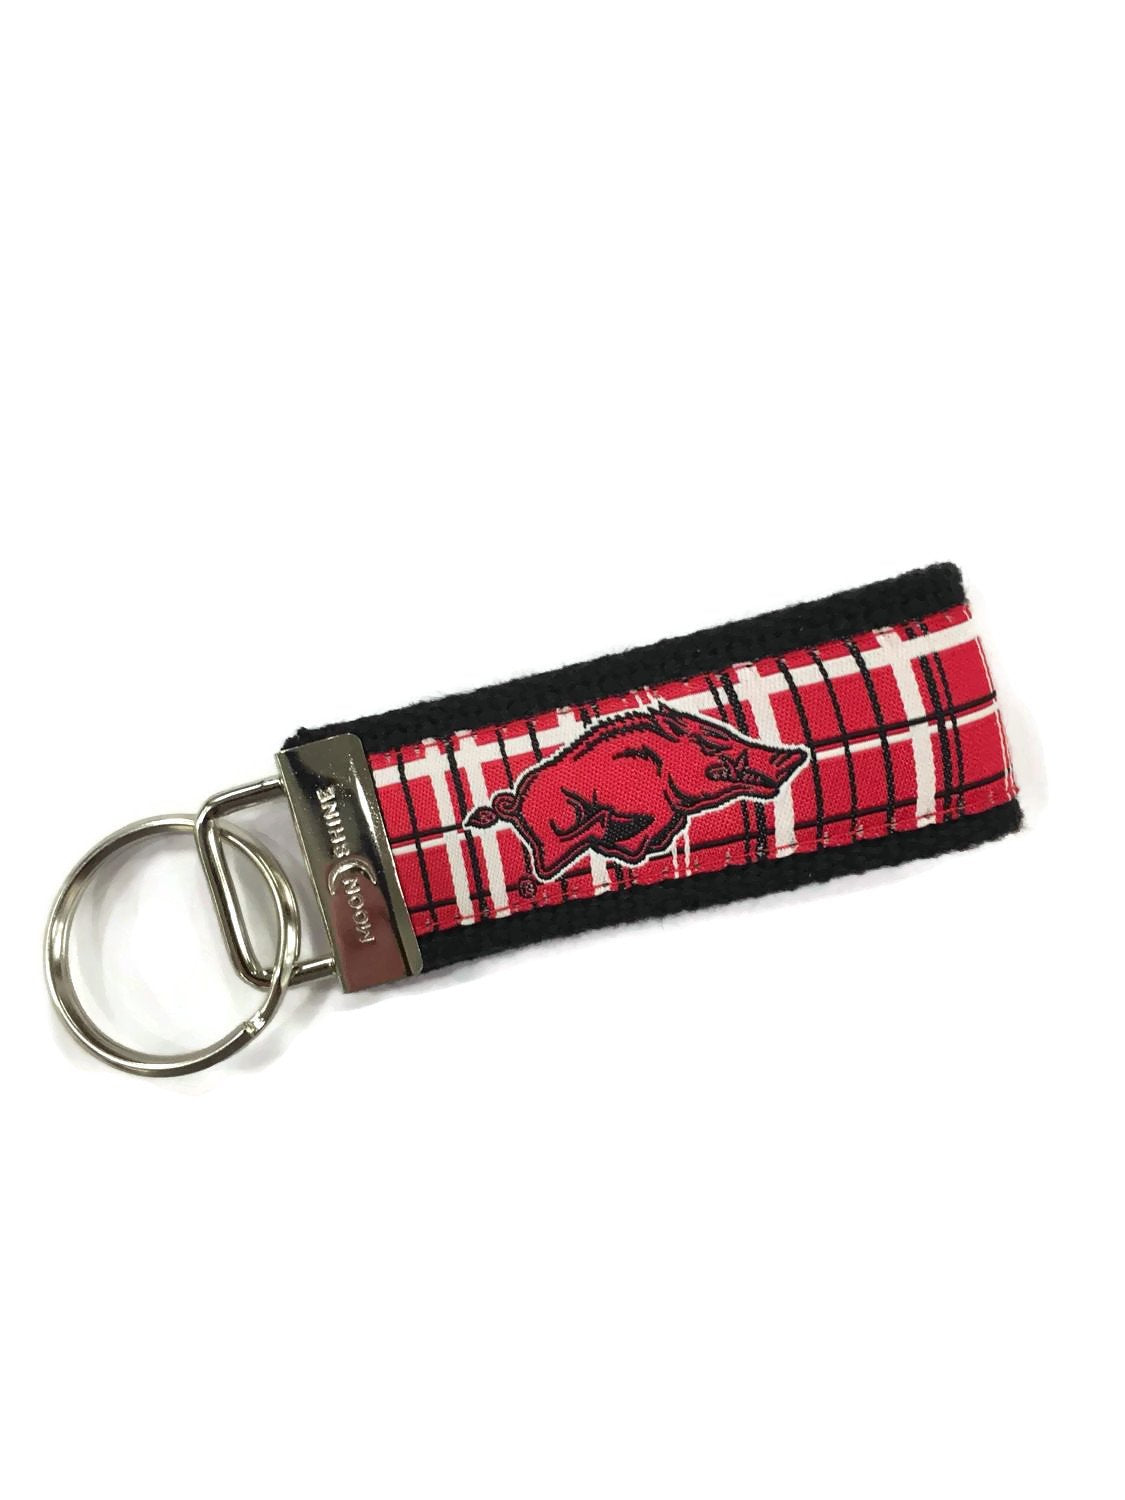 University of Arkansas licensed web key chain